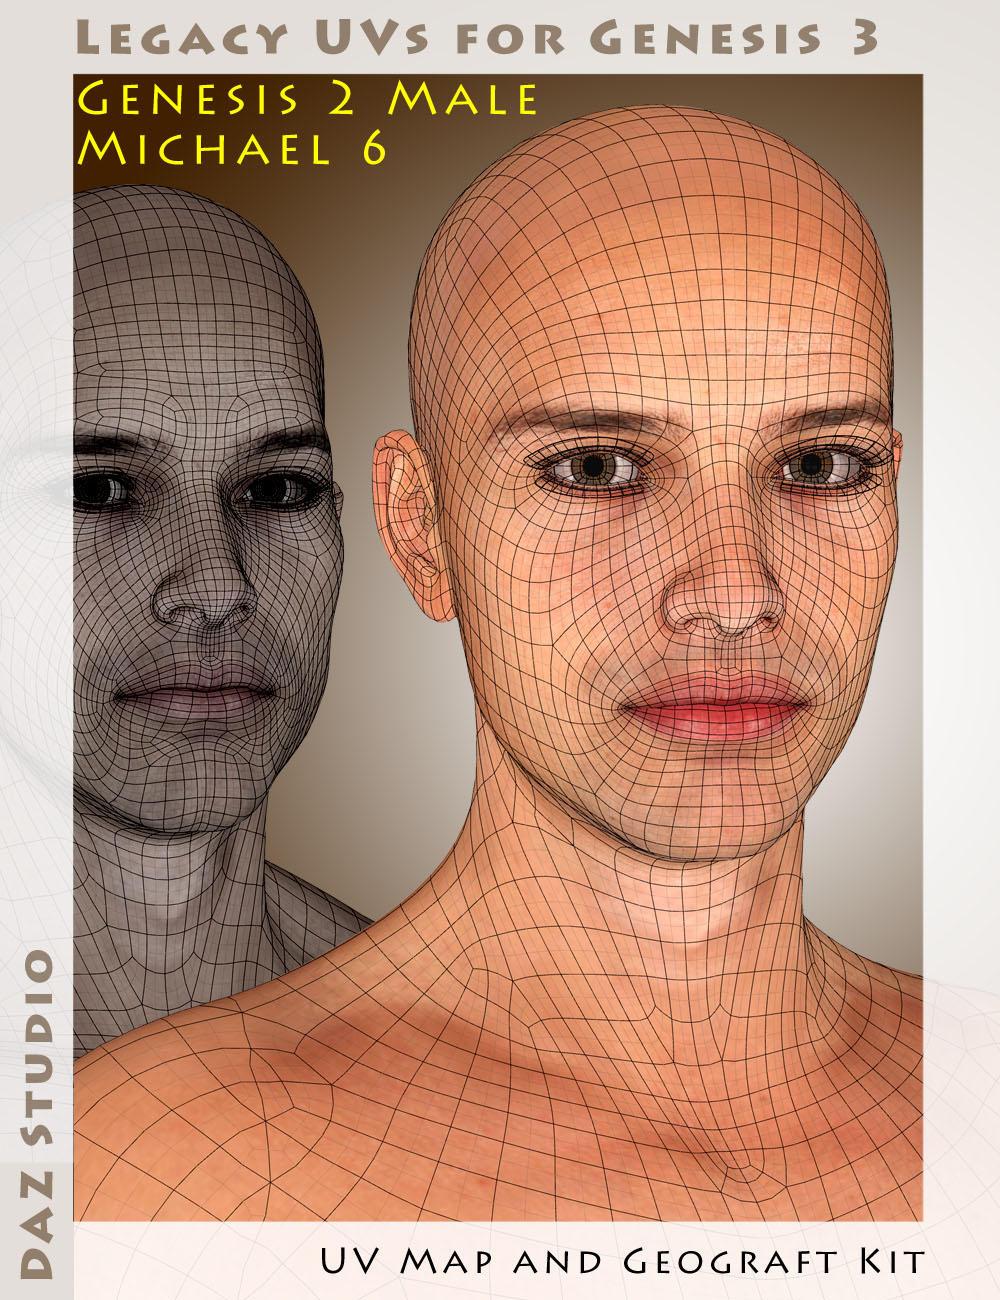 Legacy UVs for Genesis 3: Genesis 2 Male and Michael 6 by: Cayman Studios, 3D Models by Daz 3D